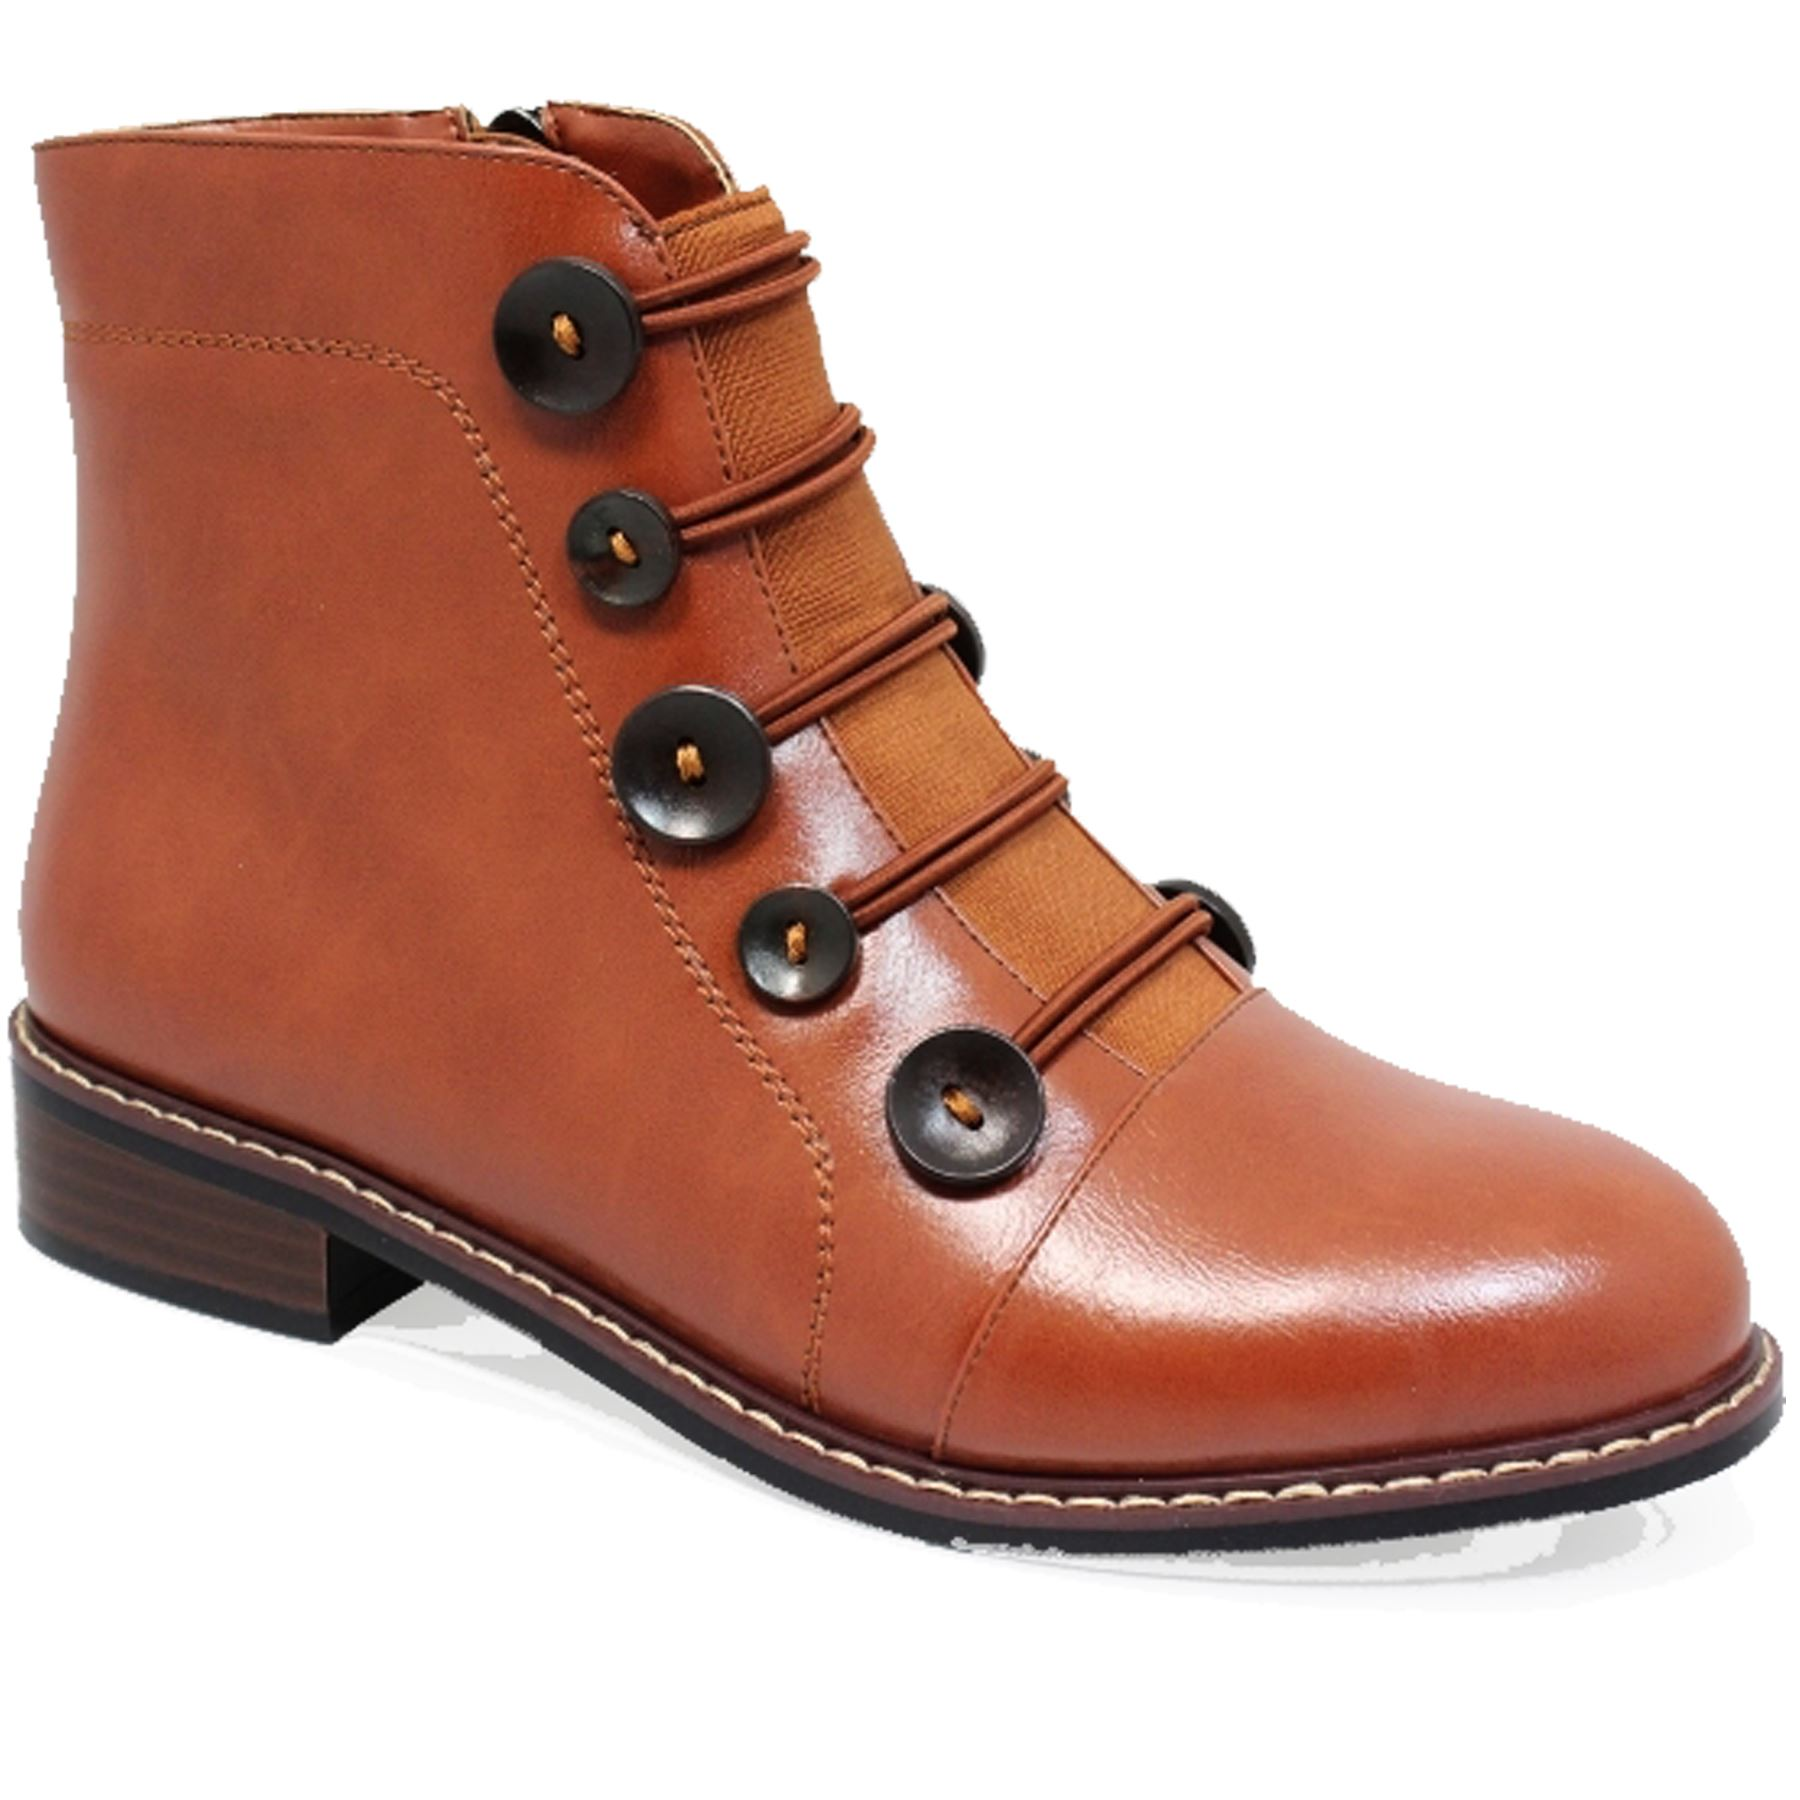 GLC649 Sinead Faux Elasticated Leather Side Zipper Ankle Elasticated Faux Button Boots a92189